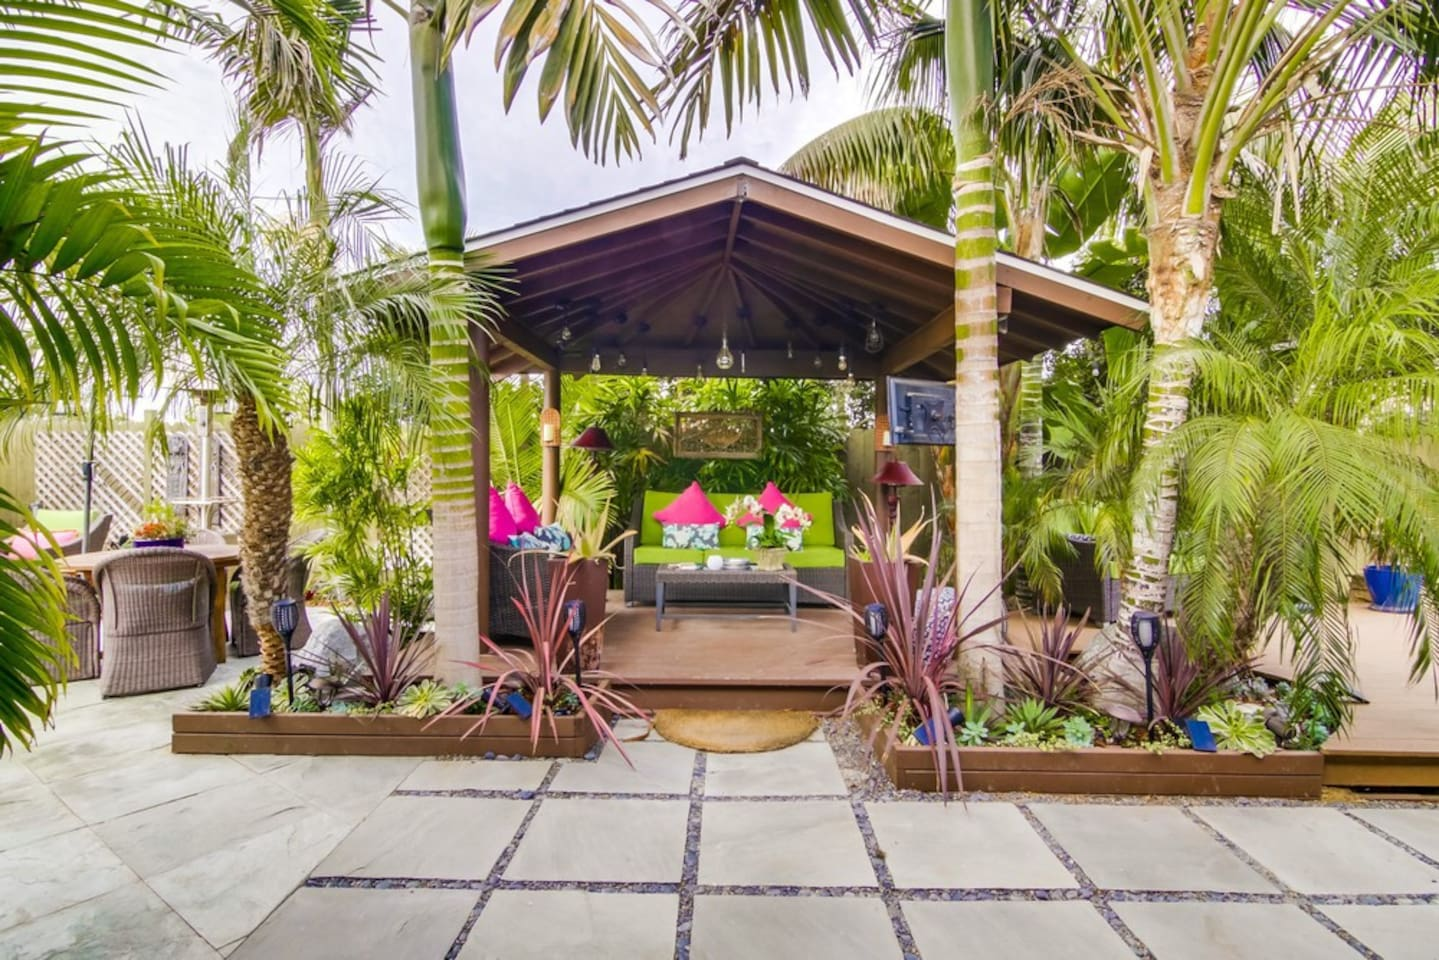 Balinese Hut / outside living space - your own personal resort